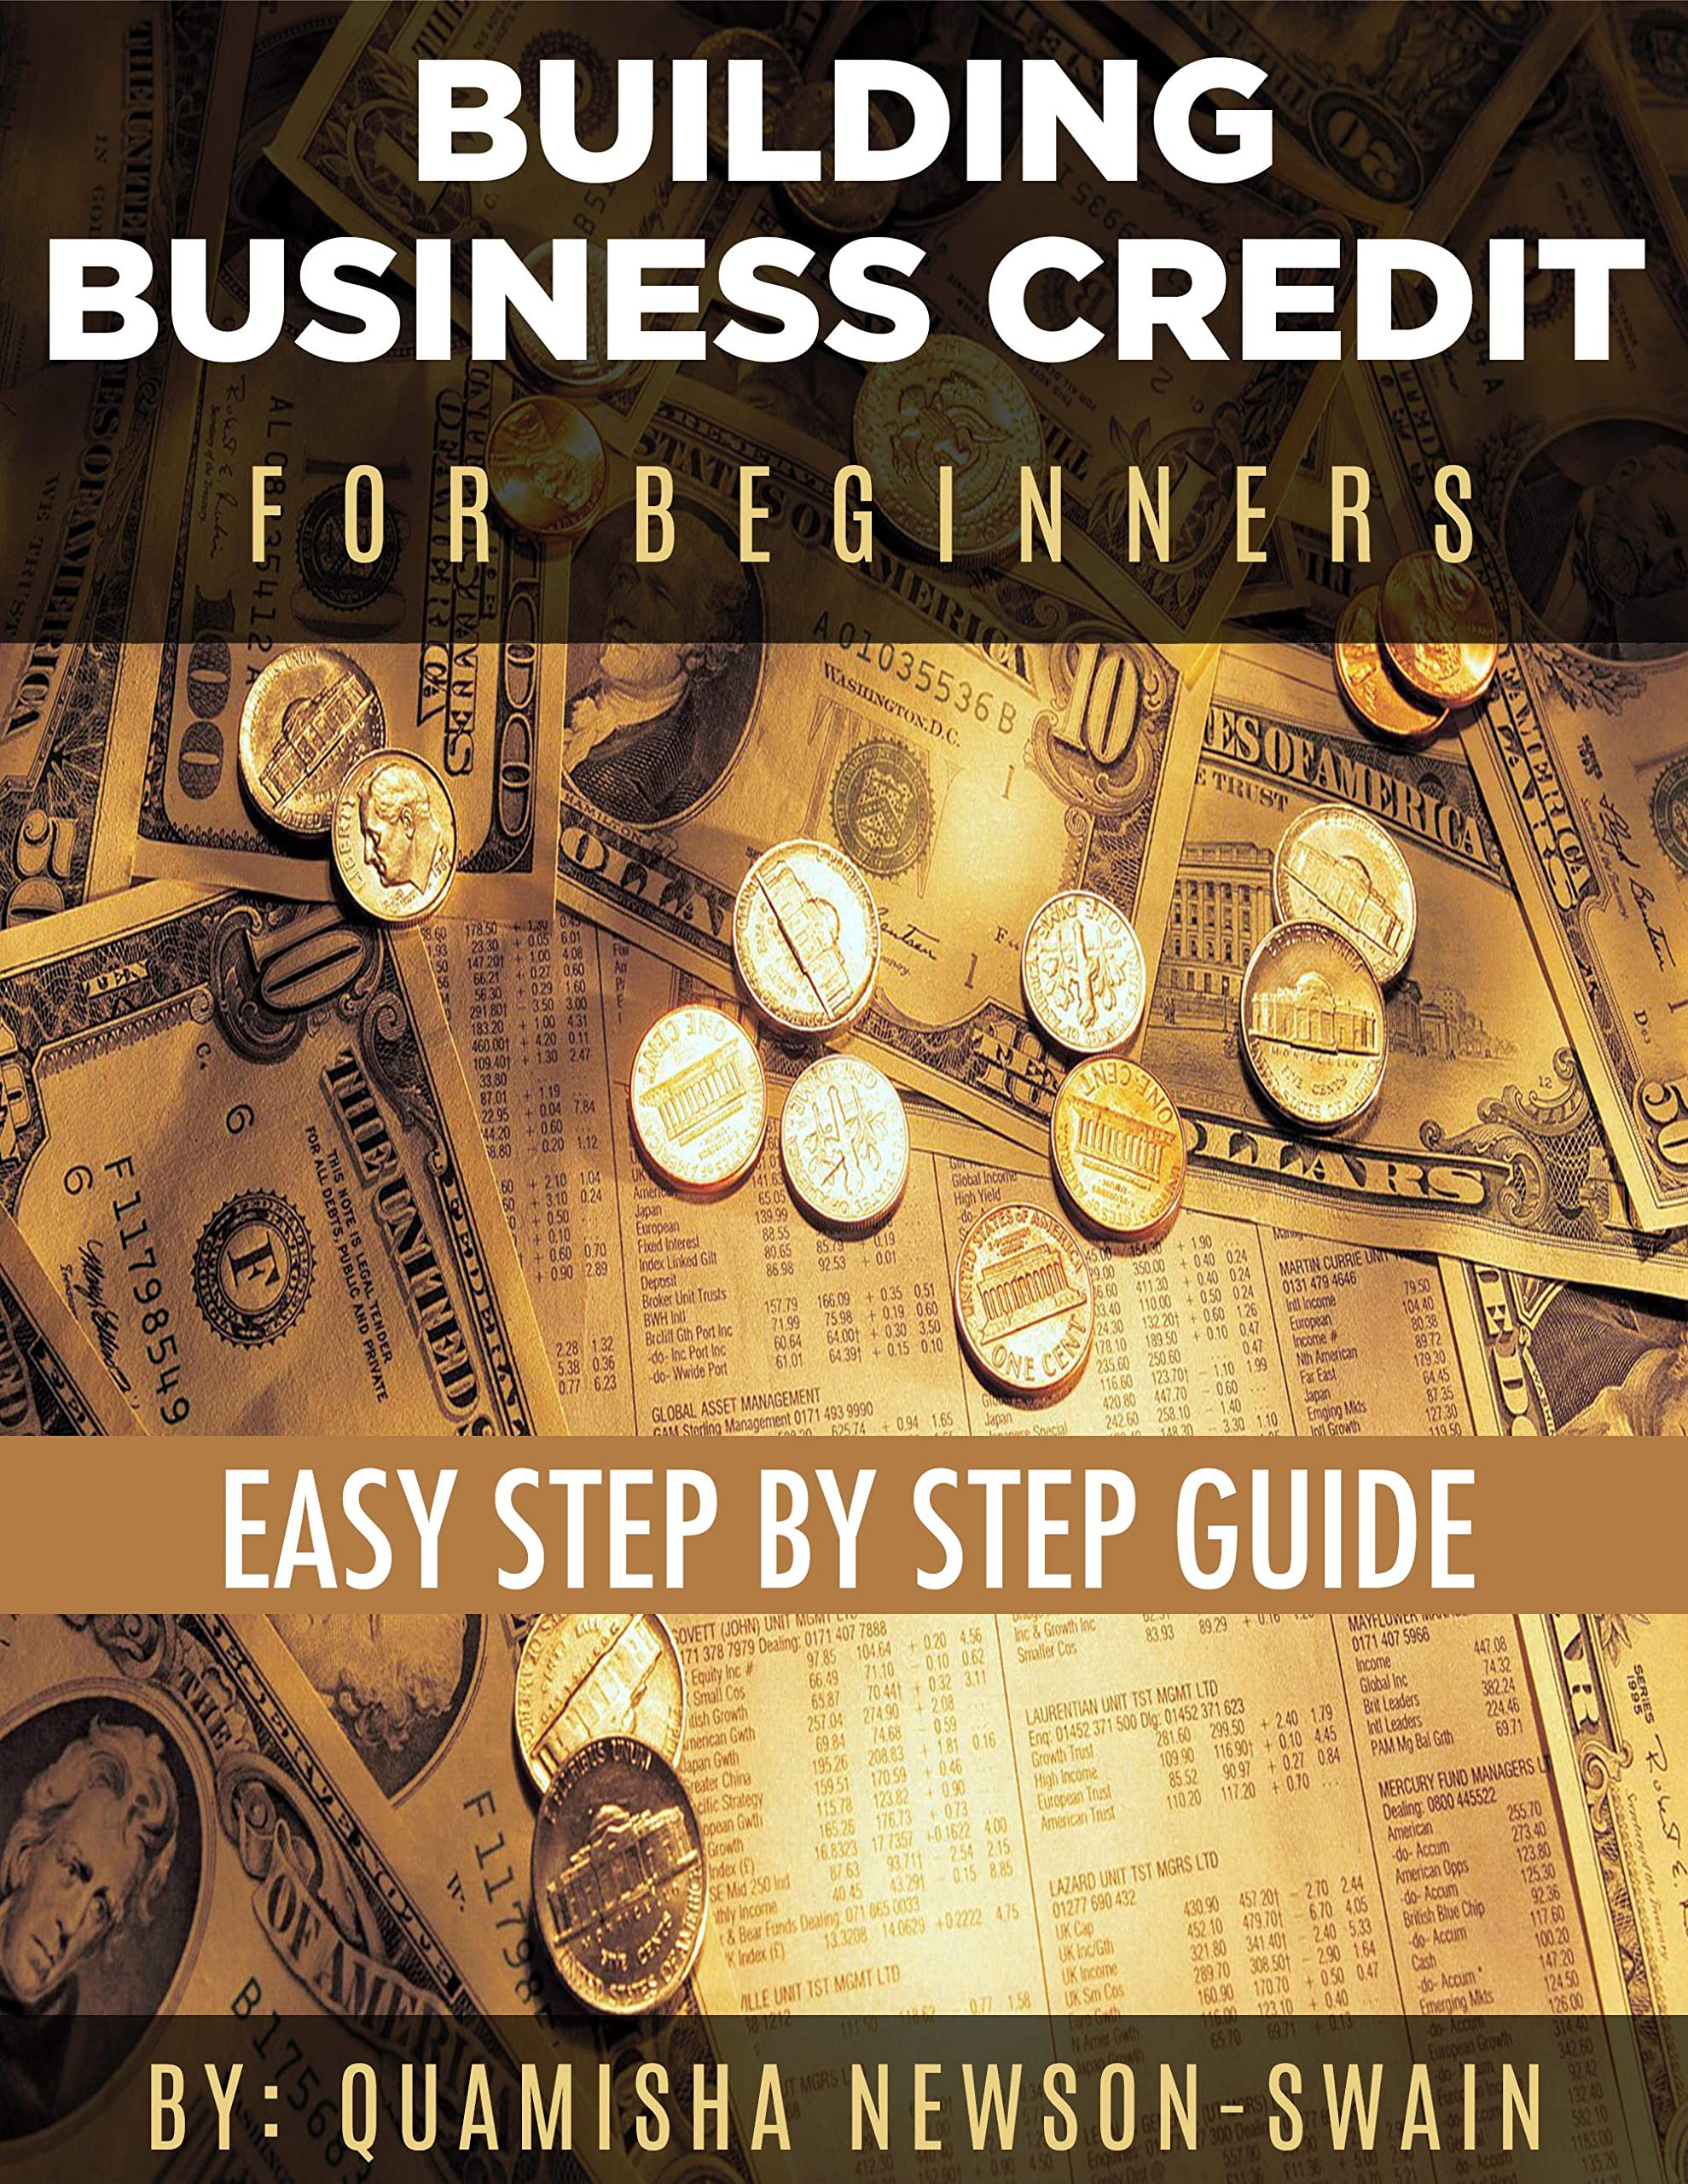 Building Business Credit for Beginners: How To Build Business Credit Guide